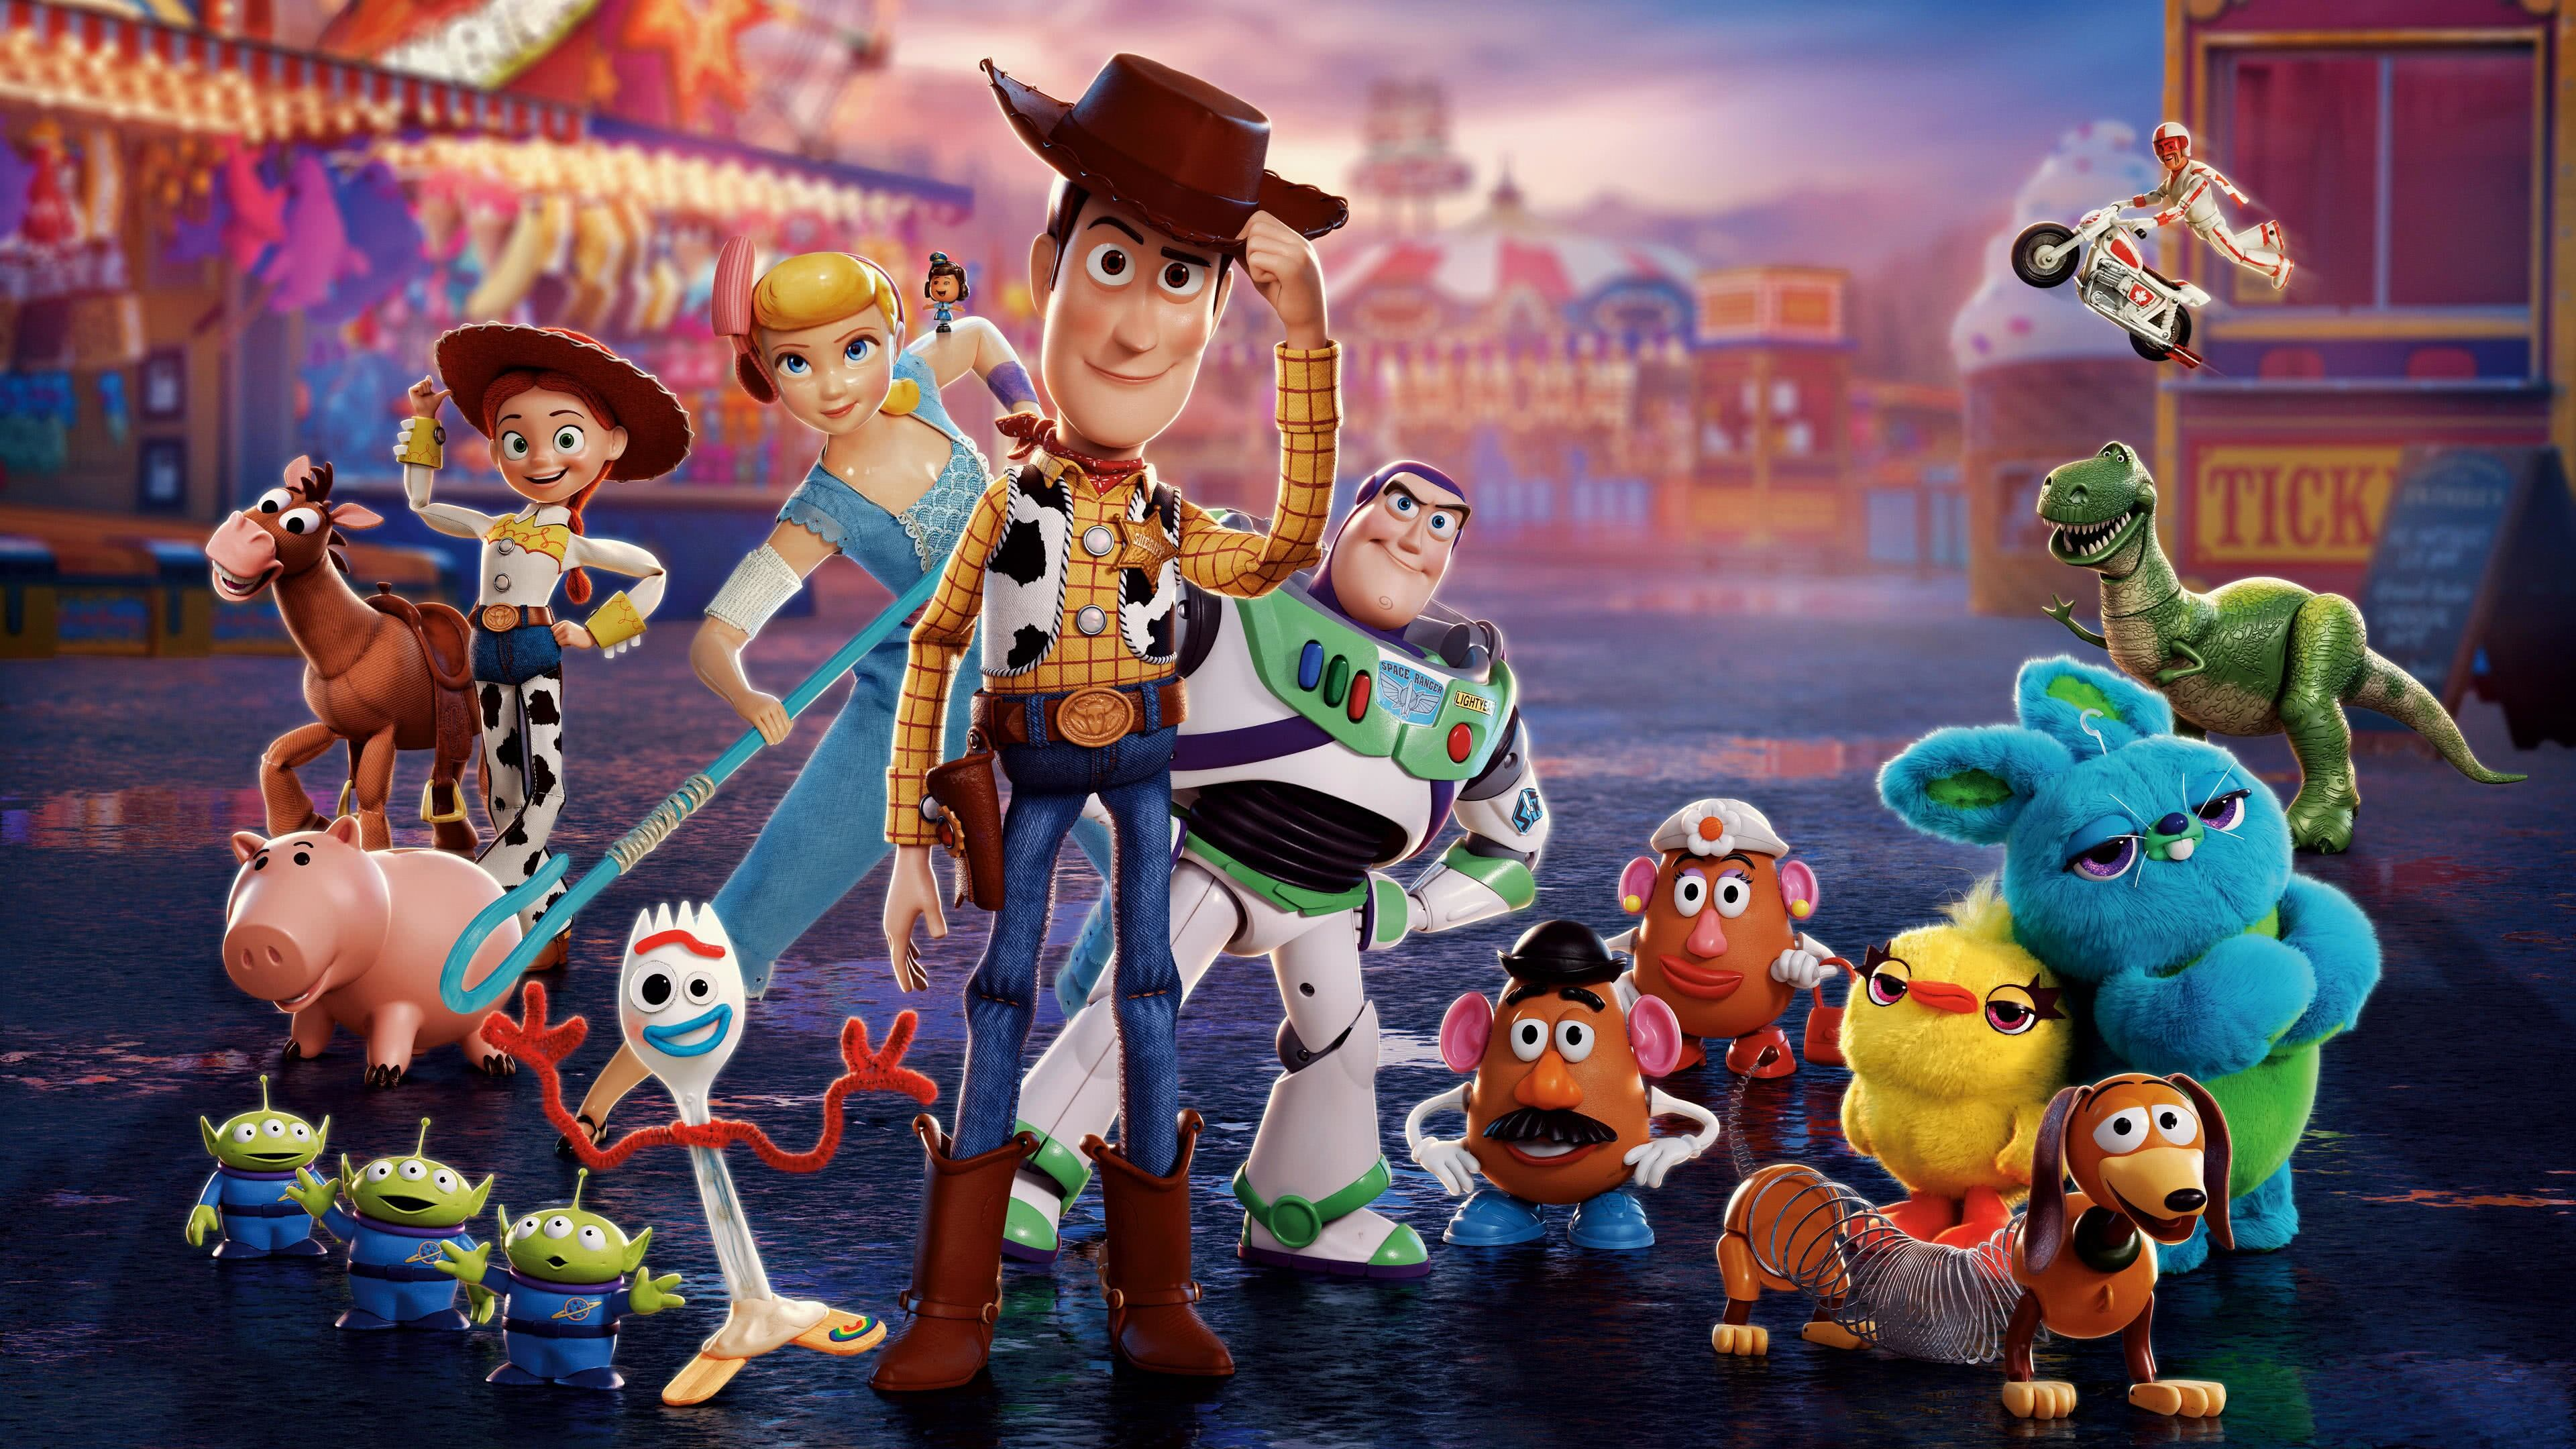 toy story 4 characters uhd 4k wallpaper